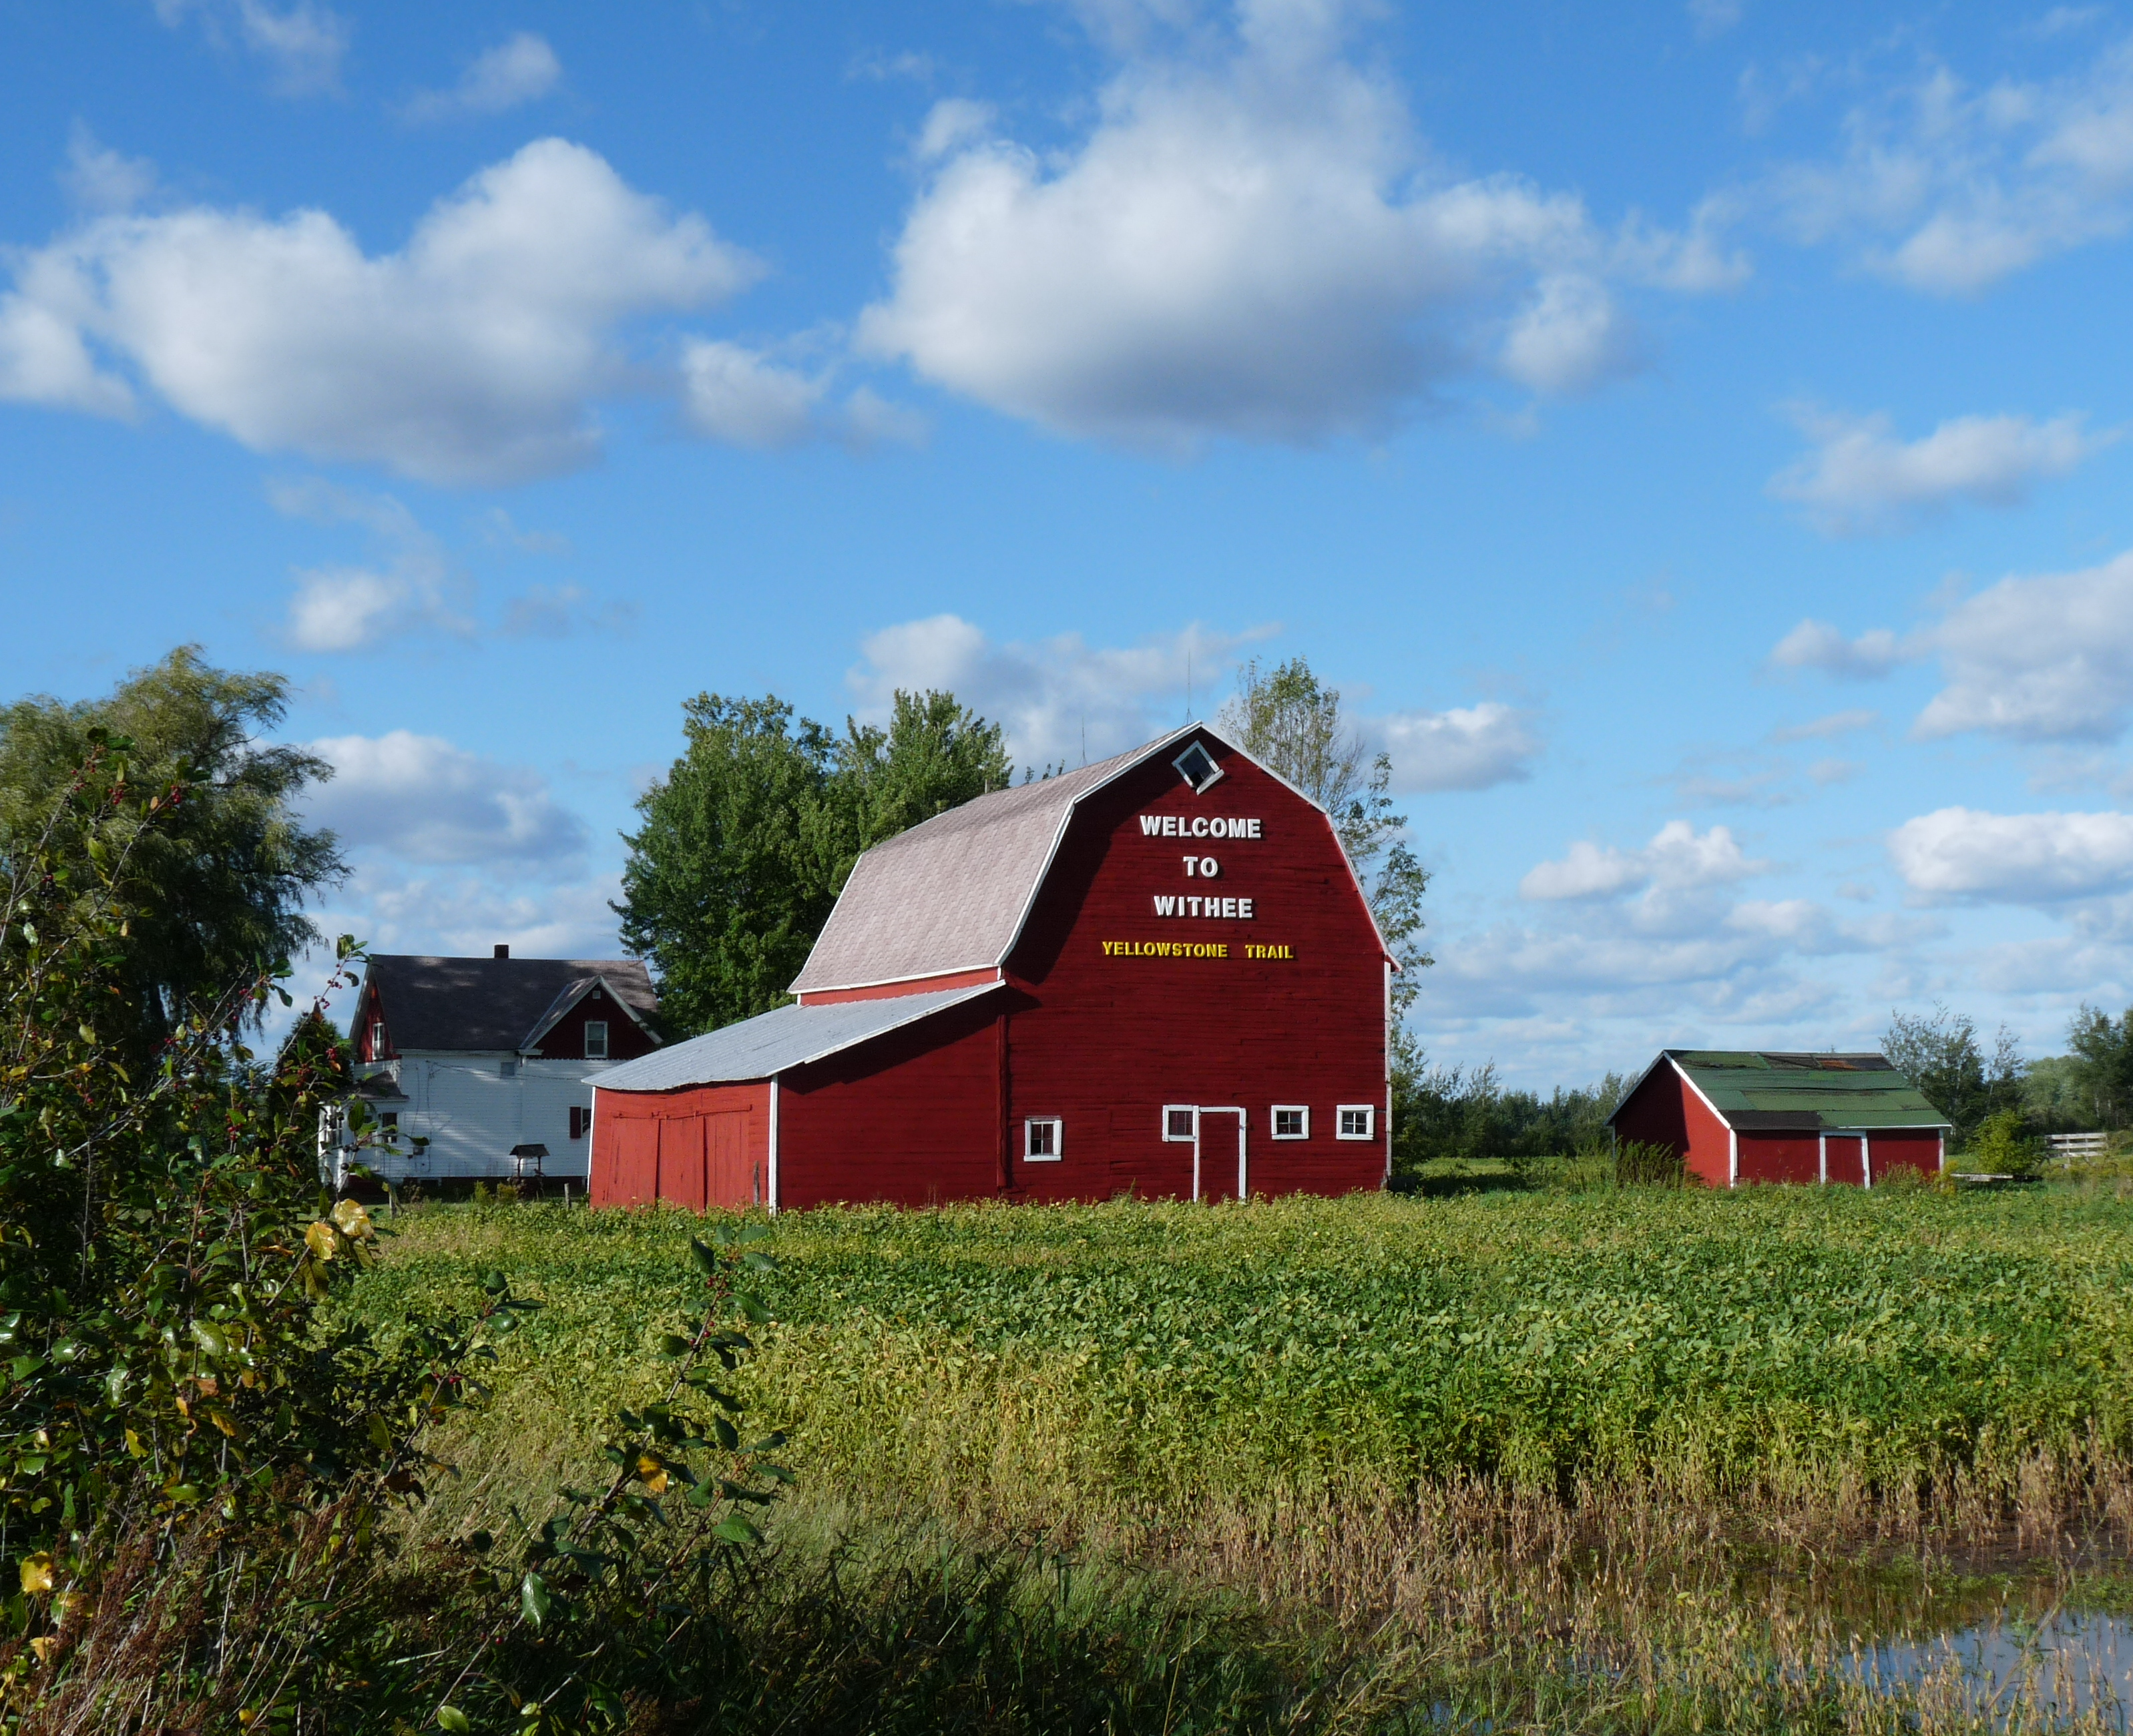 File:Farm south of Withee Wisconsin.jpg.